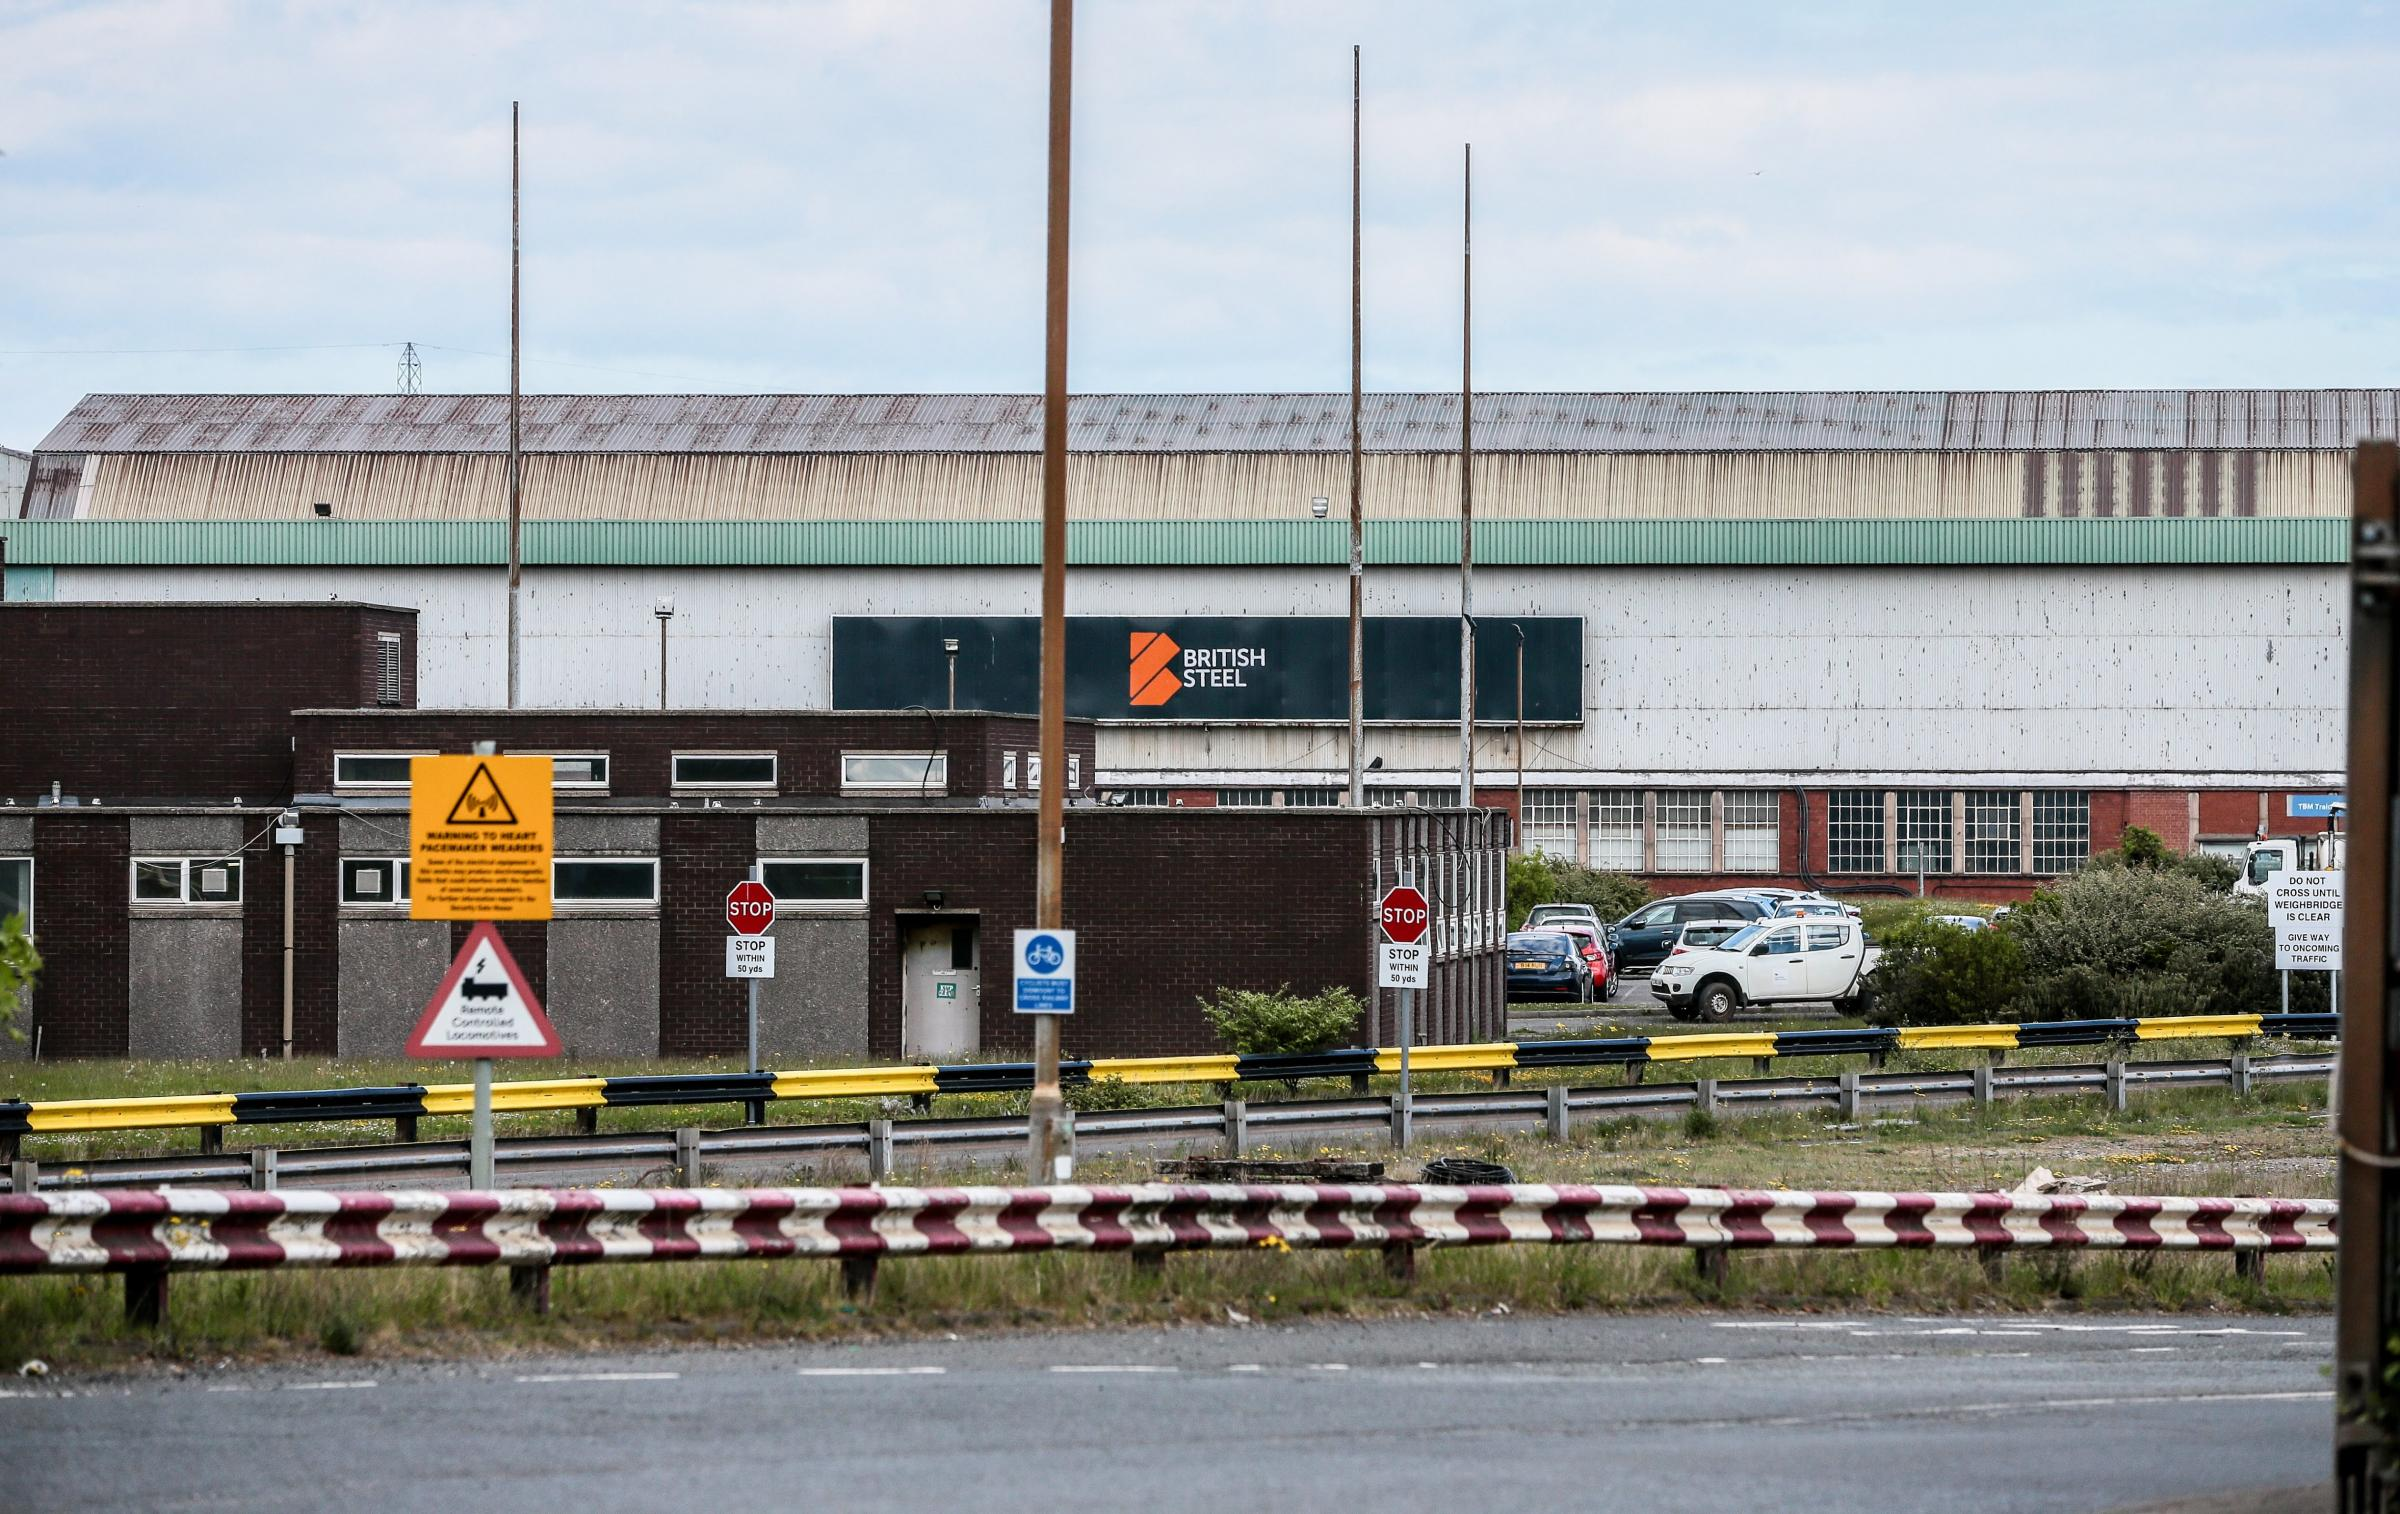 Redcar MP calls British Steel report 'shocking' as thousands of further jobs 'at risk'